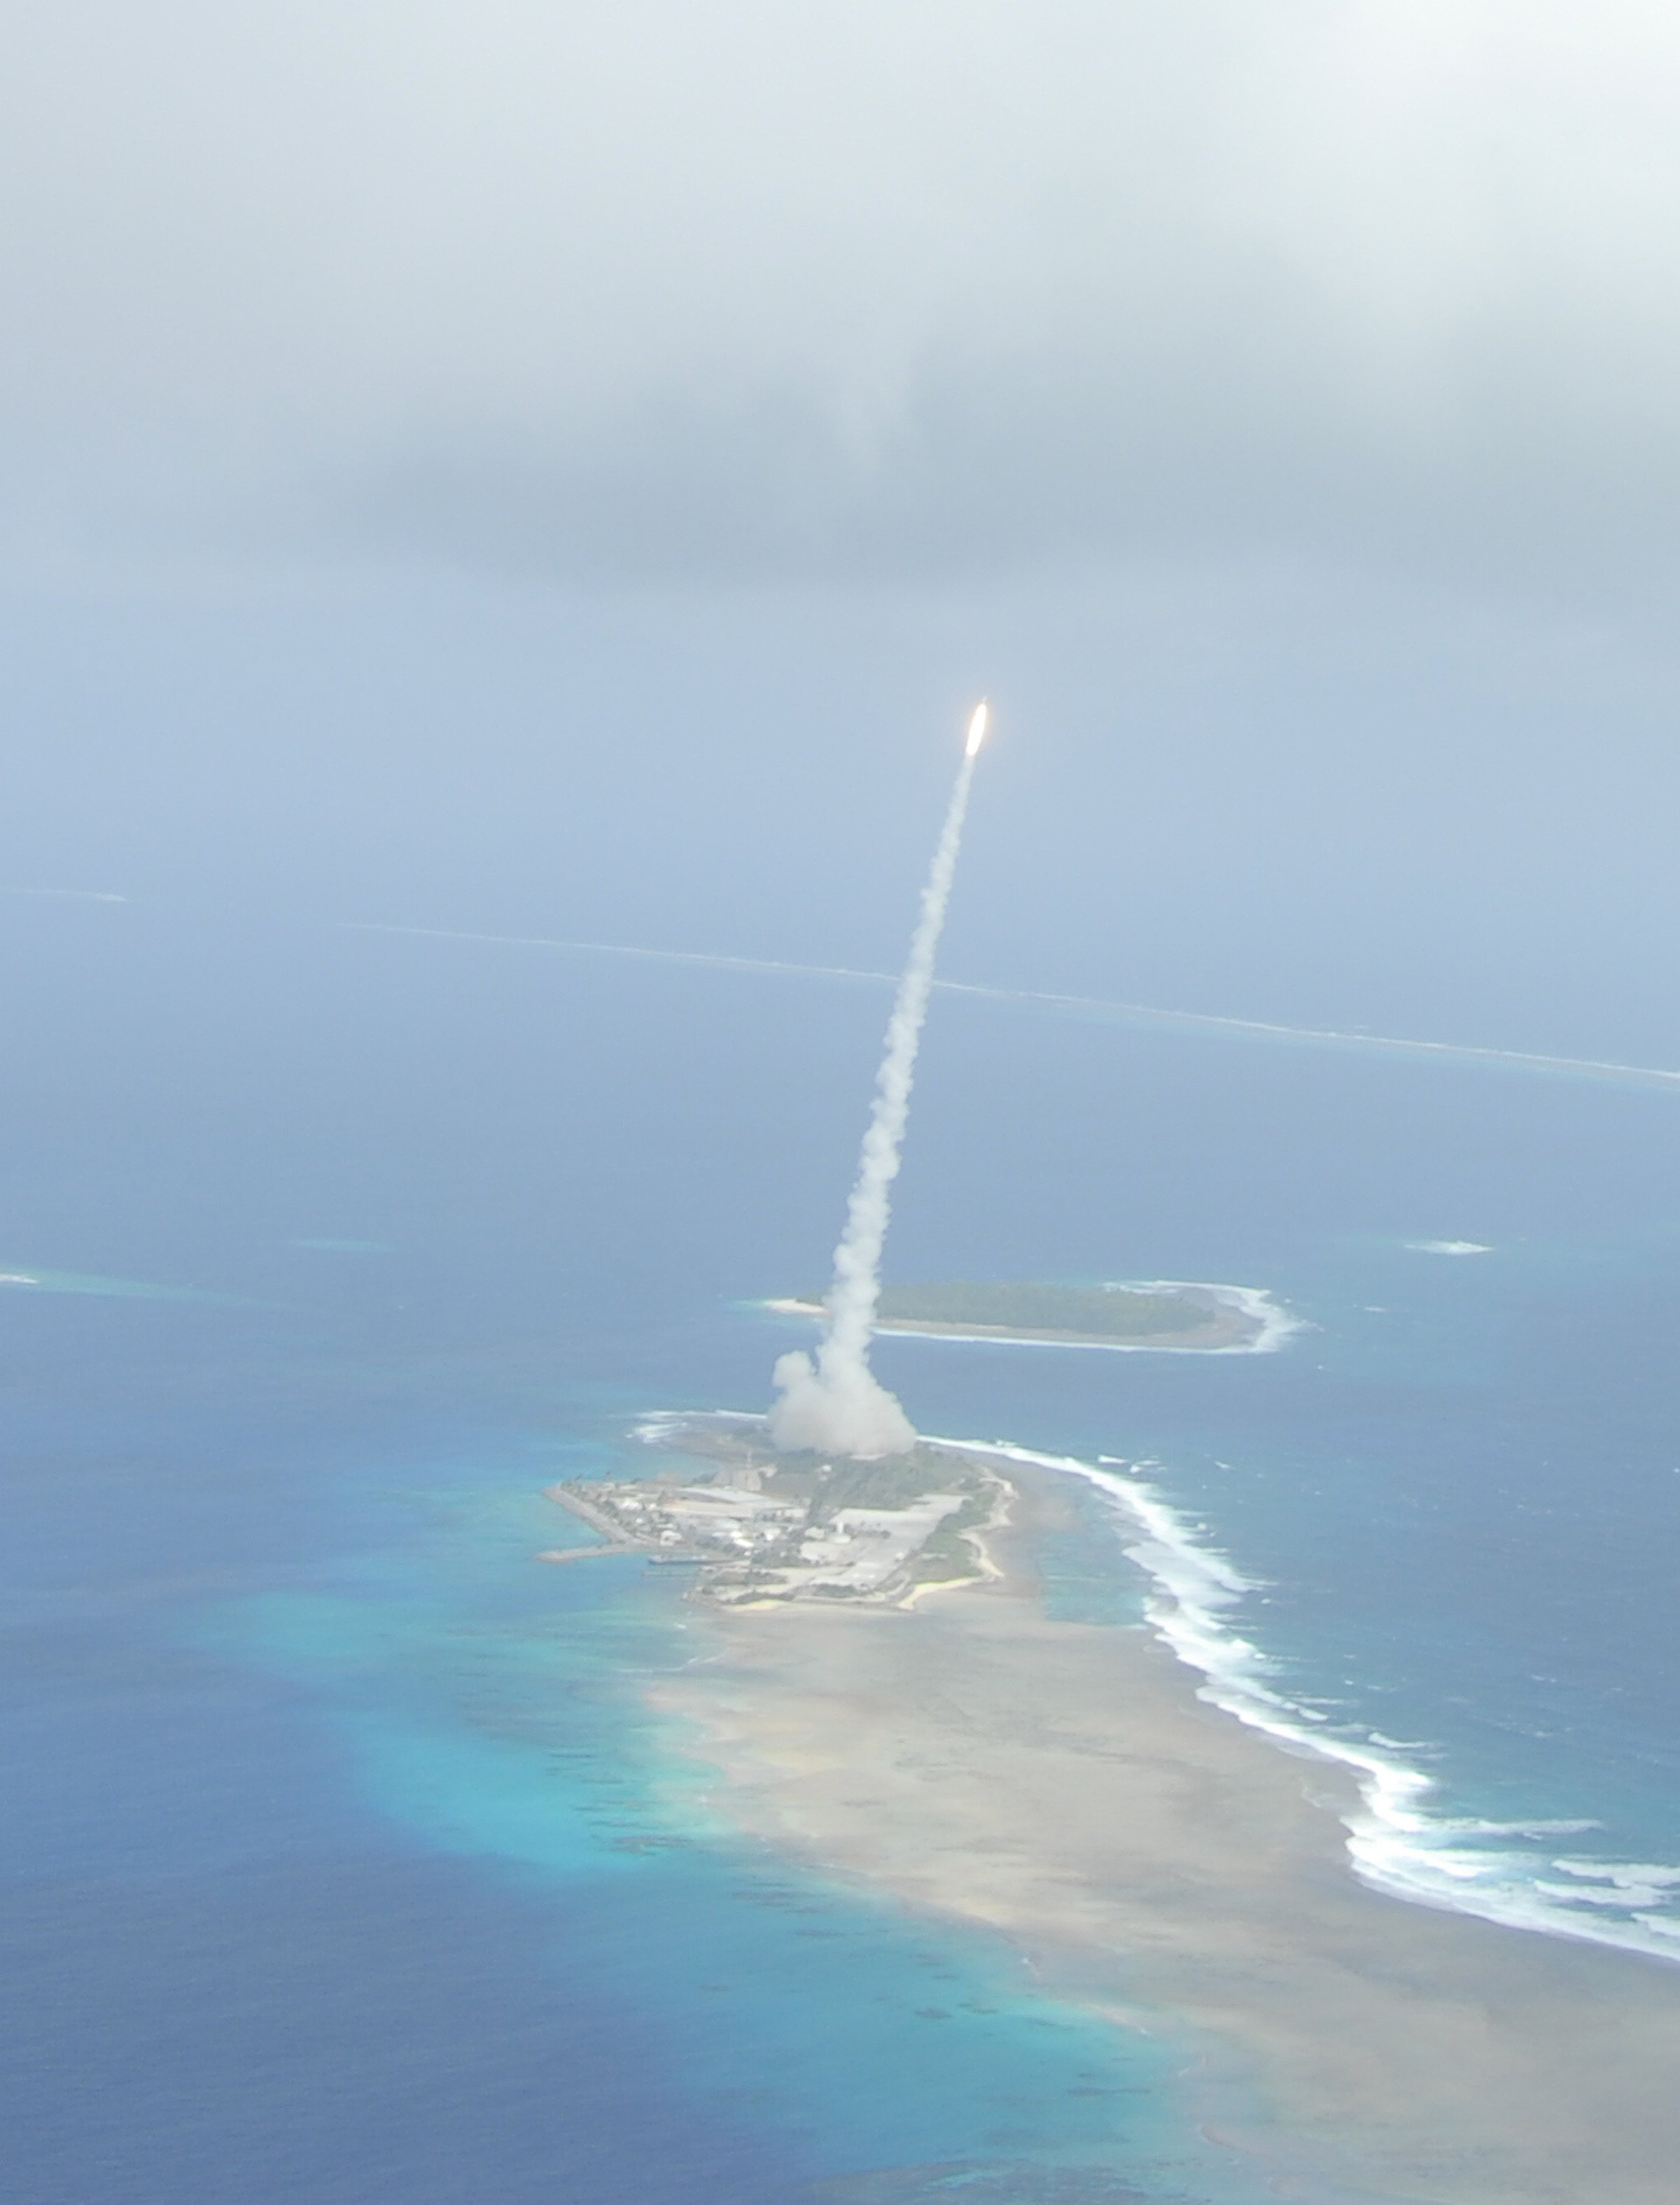 A target missile launch from Kwajalein Atoll in the Republic of the Marshall Islands